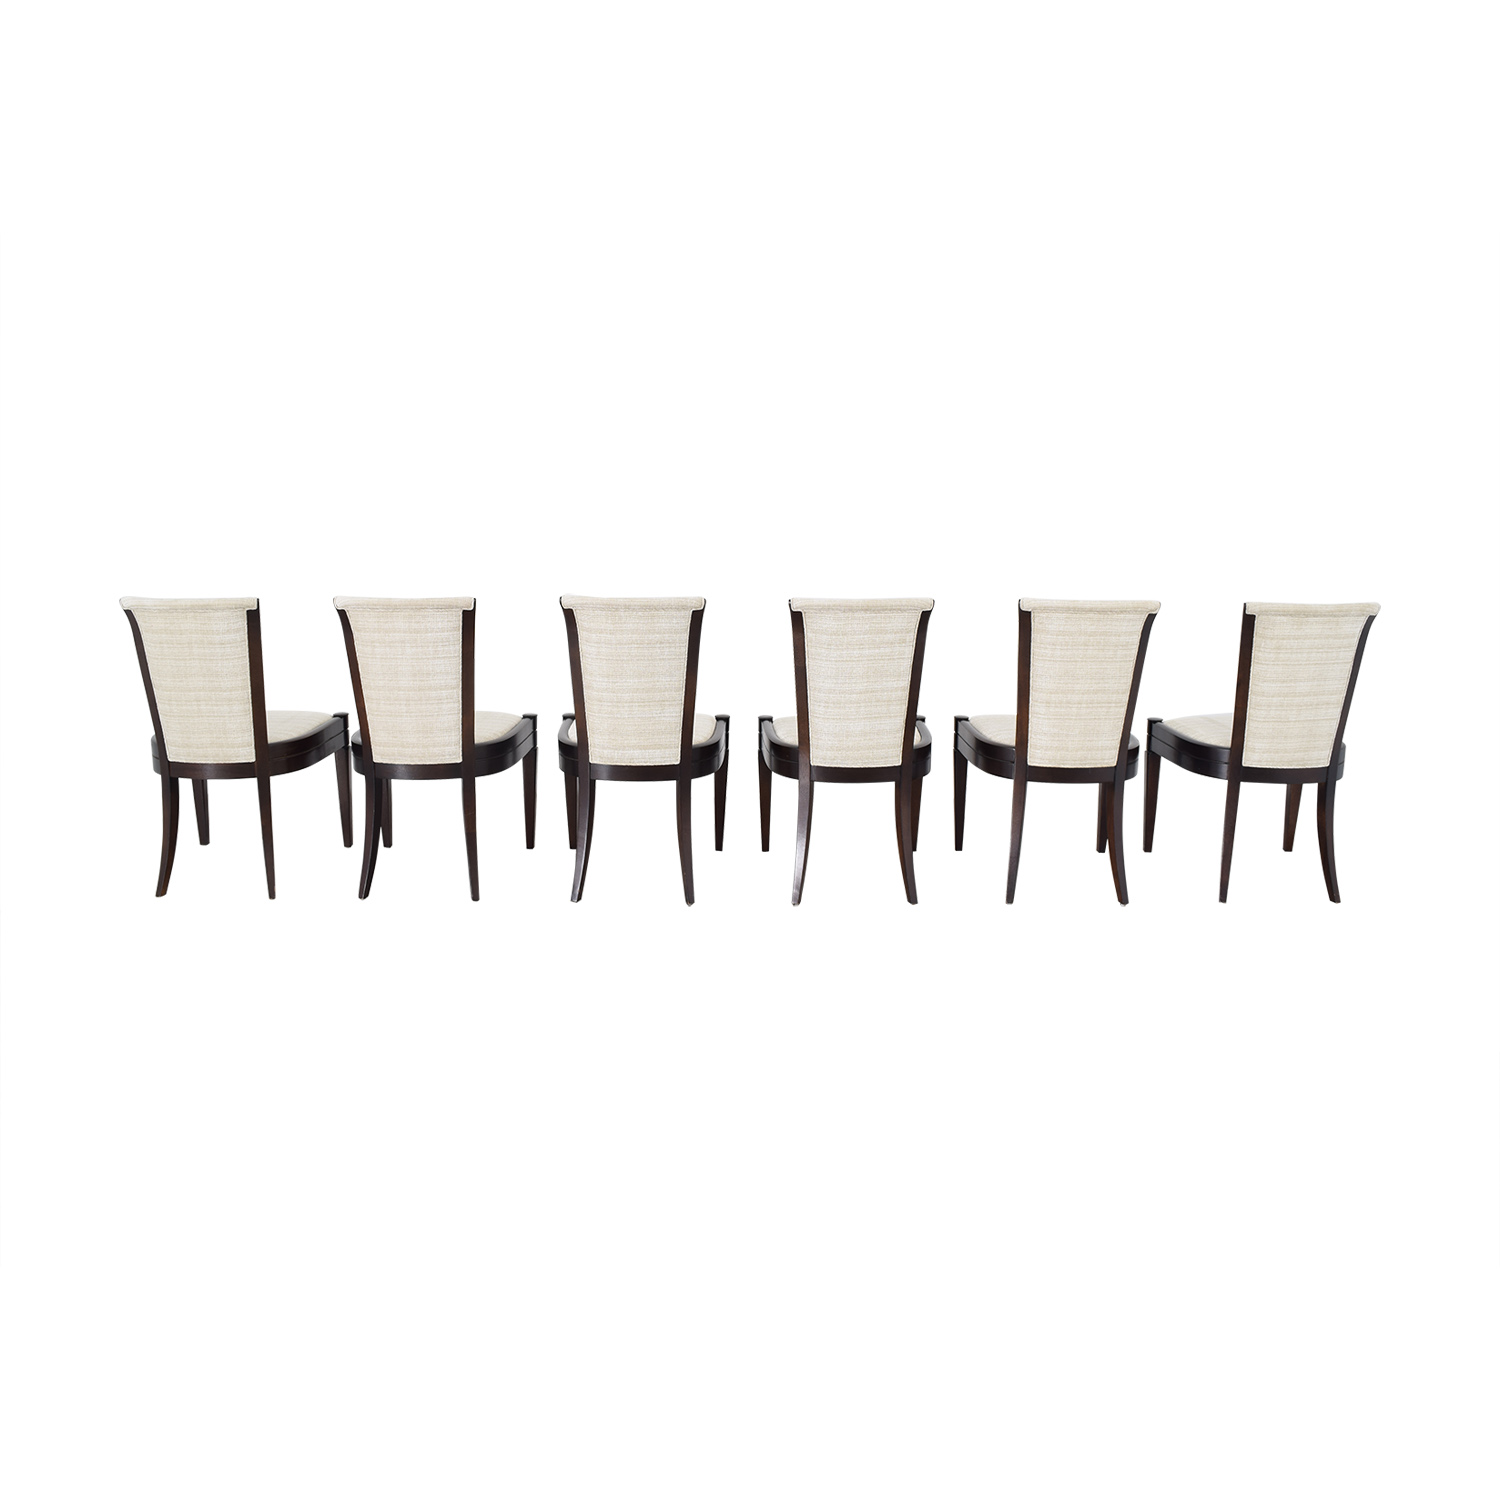 Century Furniture Century Furniture Upholstered Dining Chairs discount